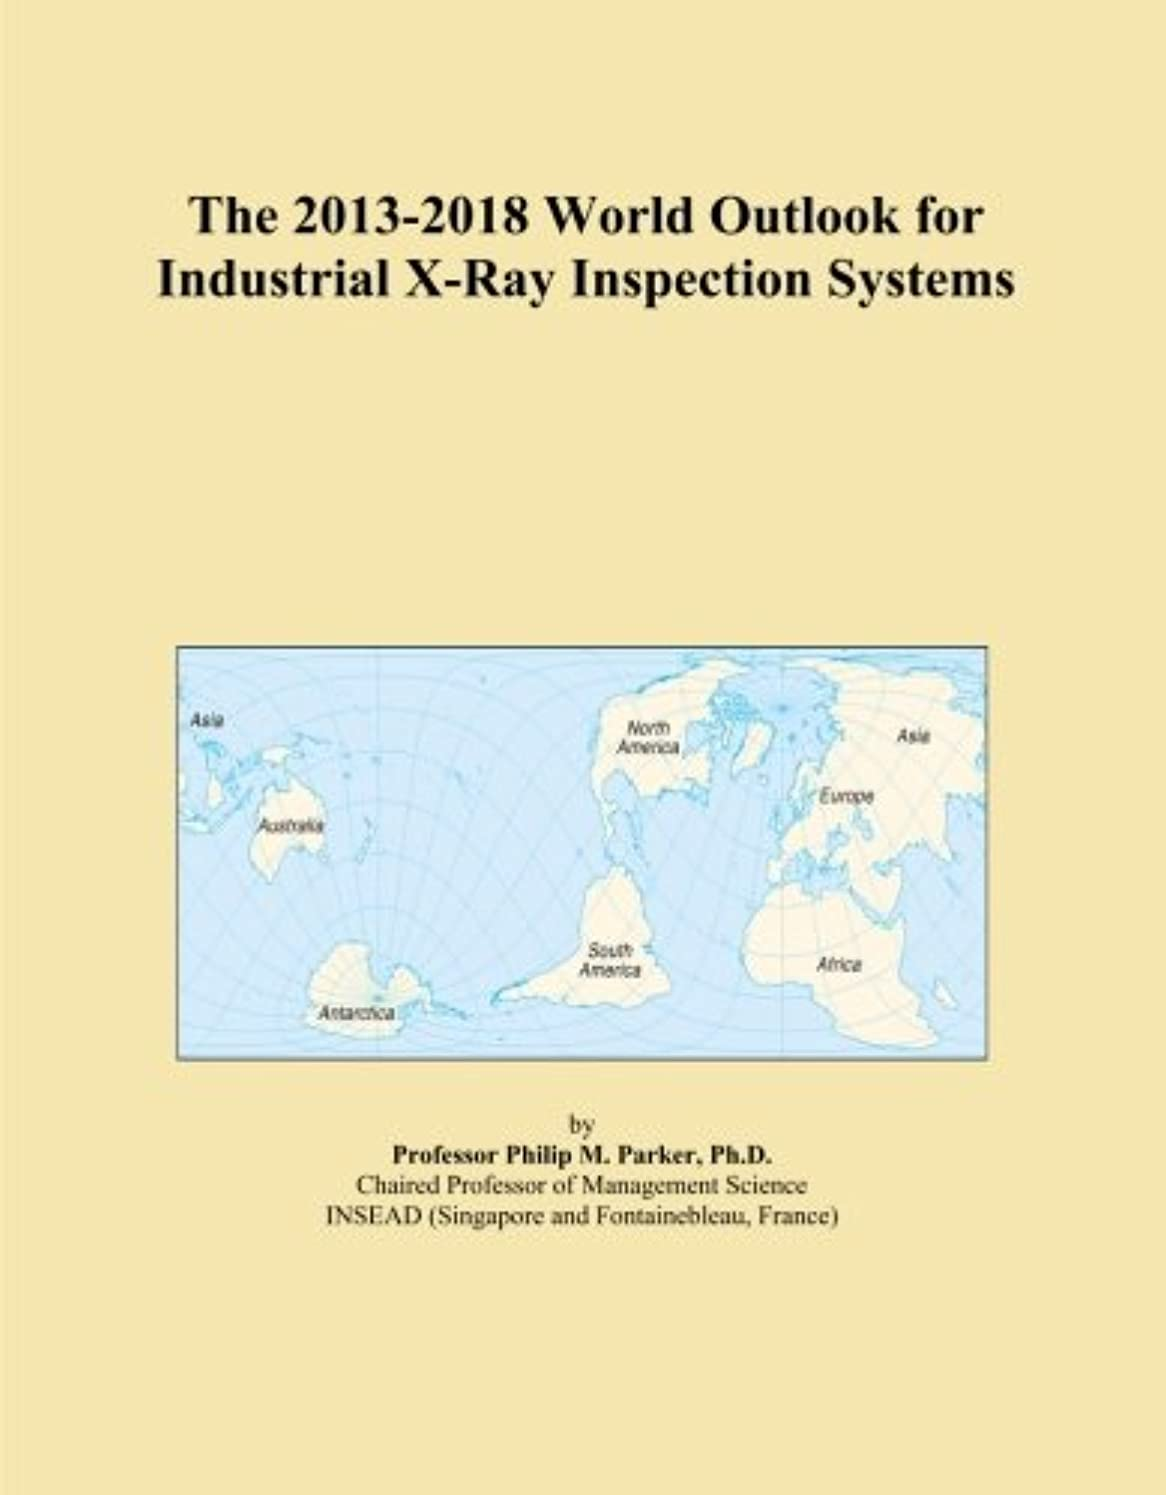 The 2013-2018 World Outlook for Industrial X-Ray Inspection Systems